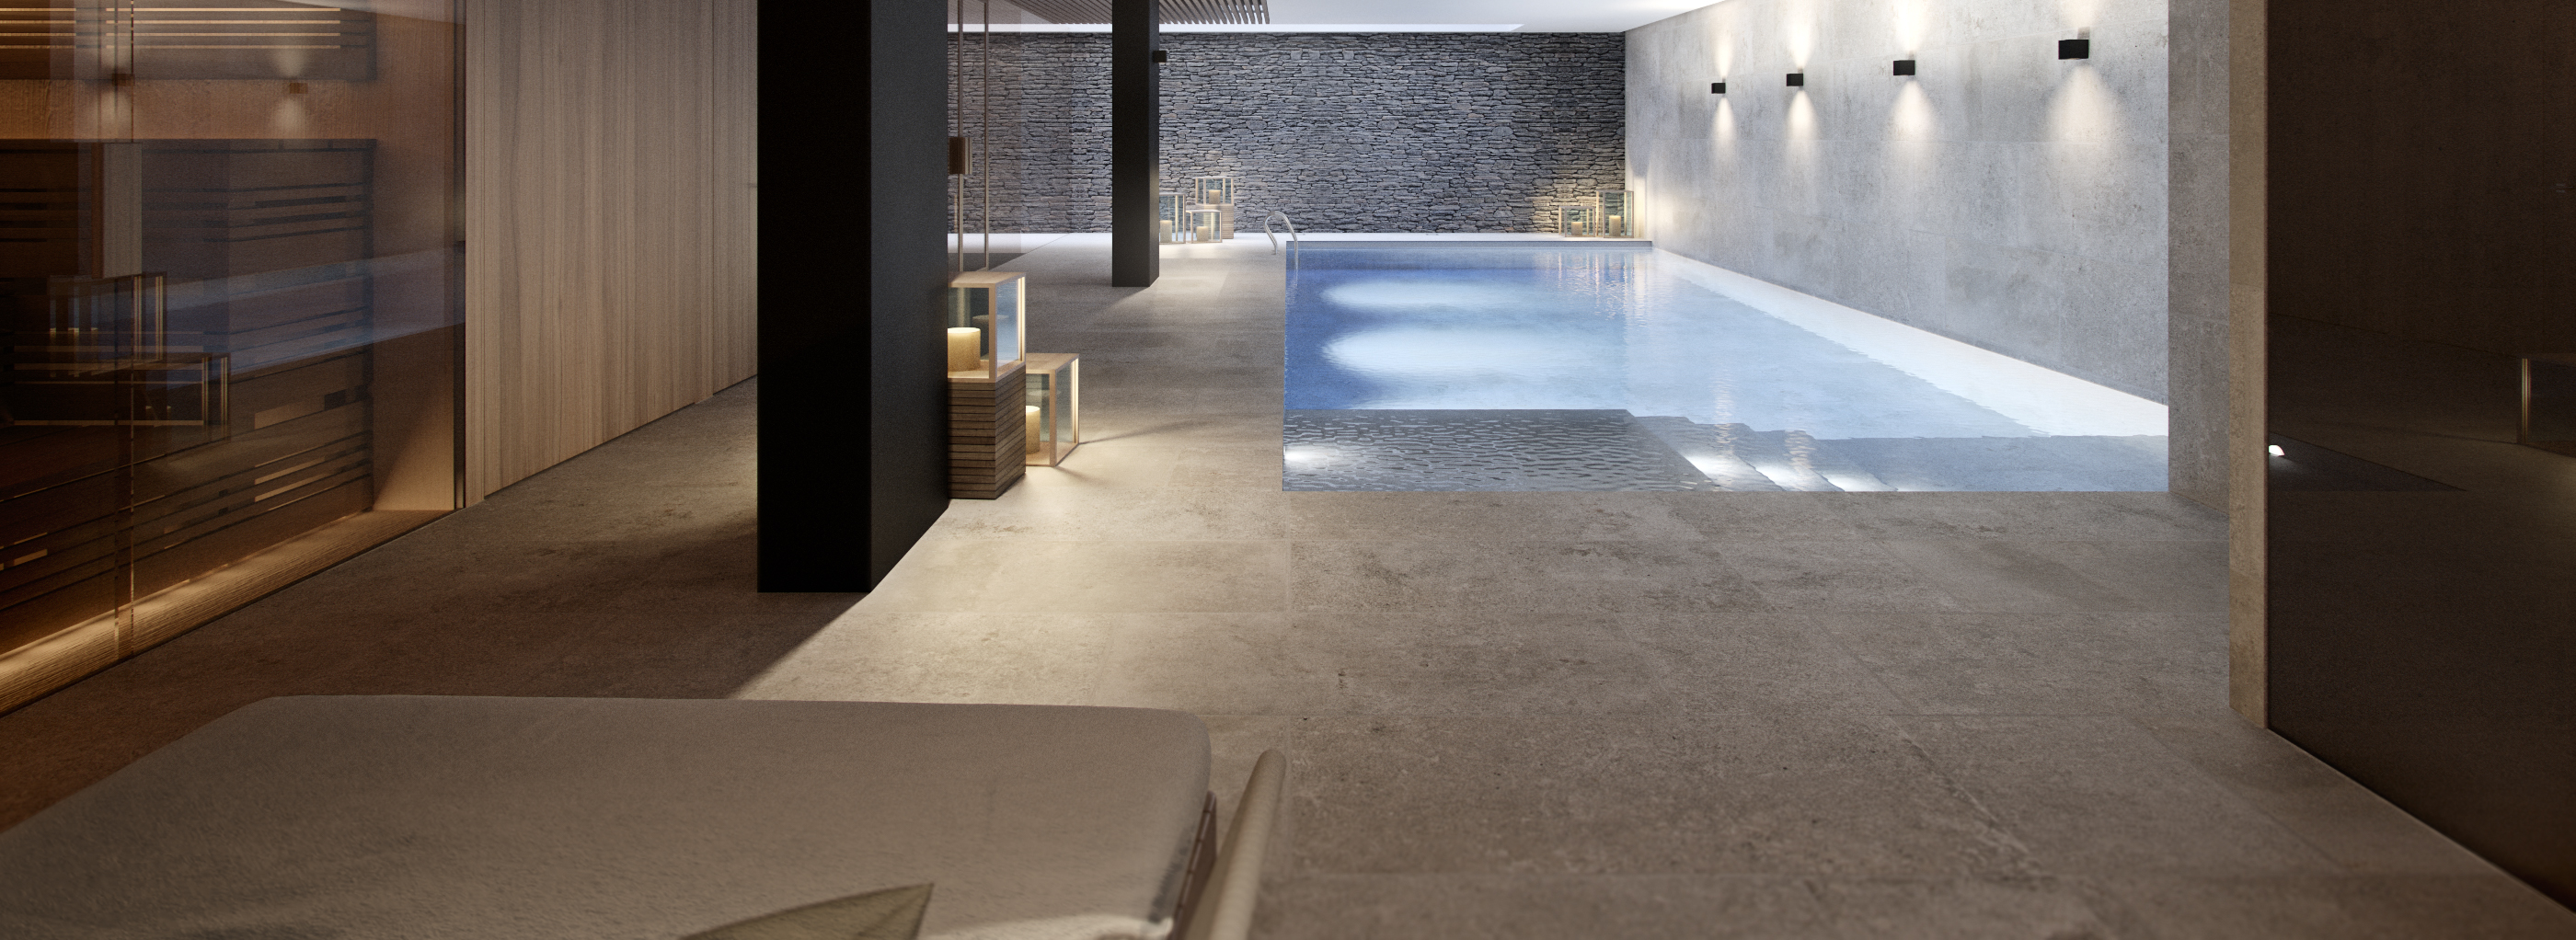 Andorra la Vella - Pool, Spa, Wellness Andorre